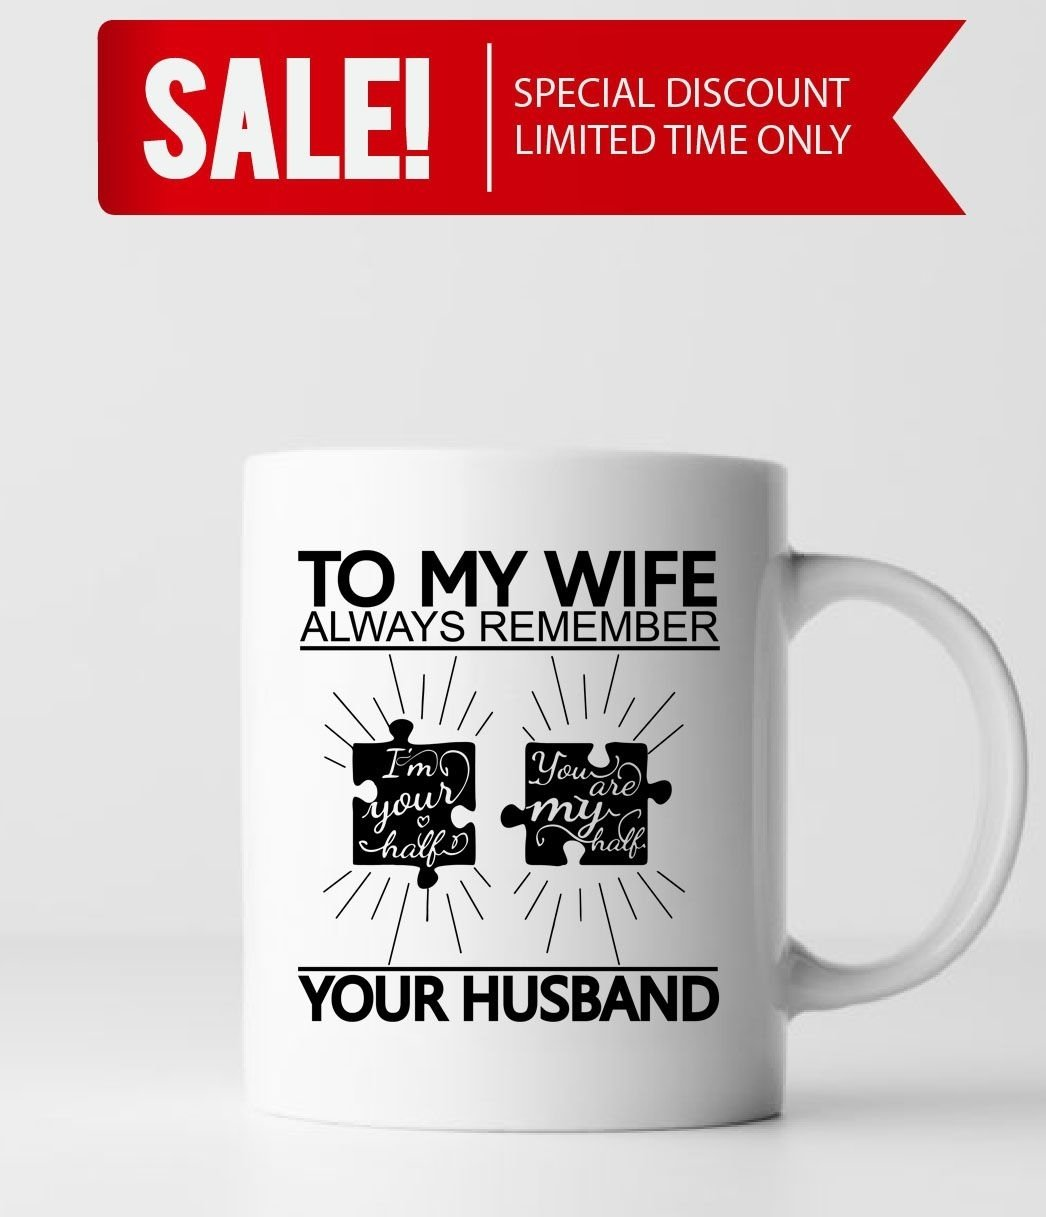 10 Gorgeous Great Birthday Ideas For Wife to my wife you are my half wife gift ideas wife gifts wife 6 2021